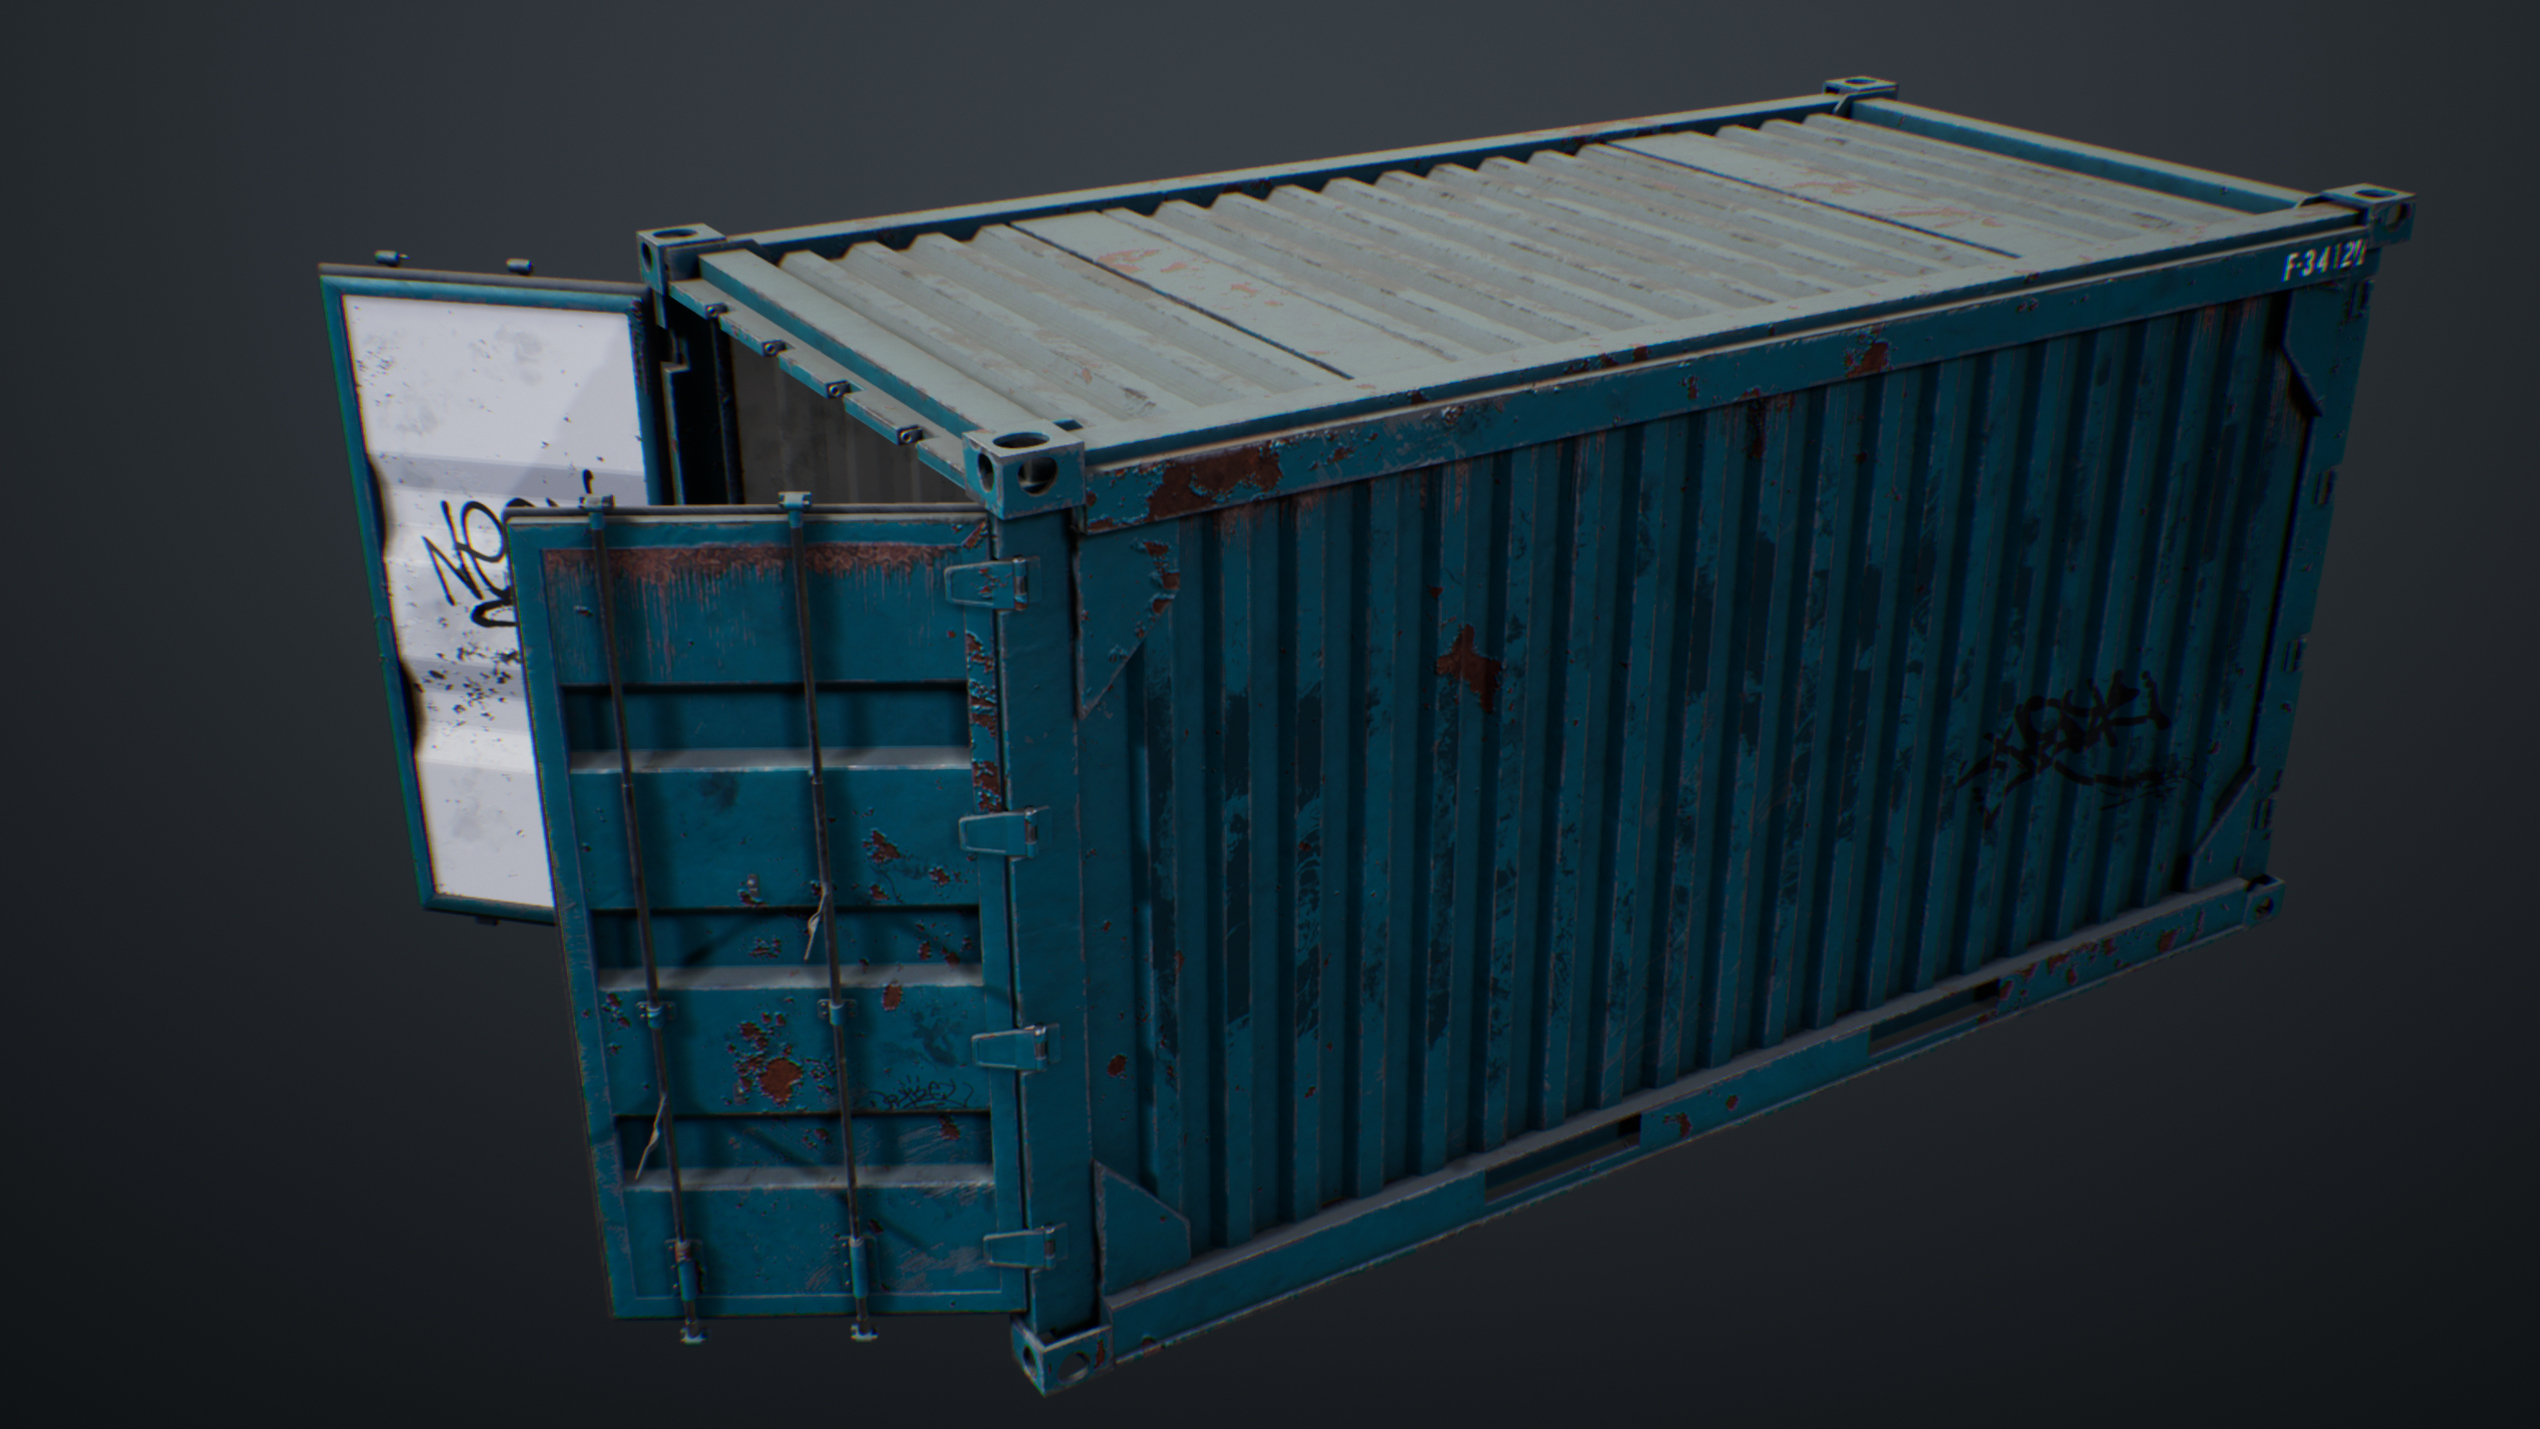 UE4 screenshot of the container front right view